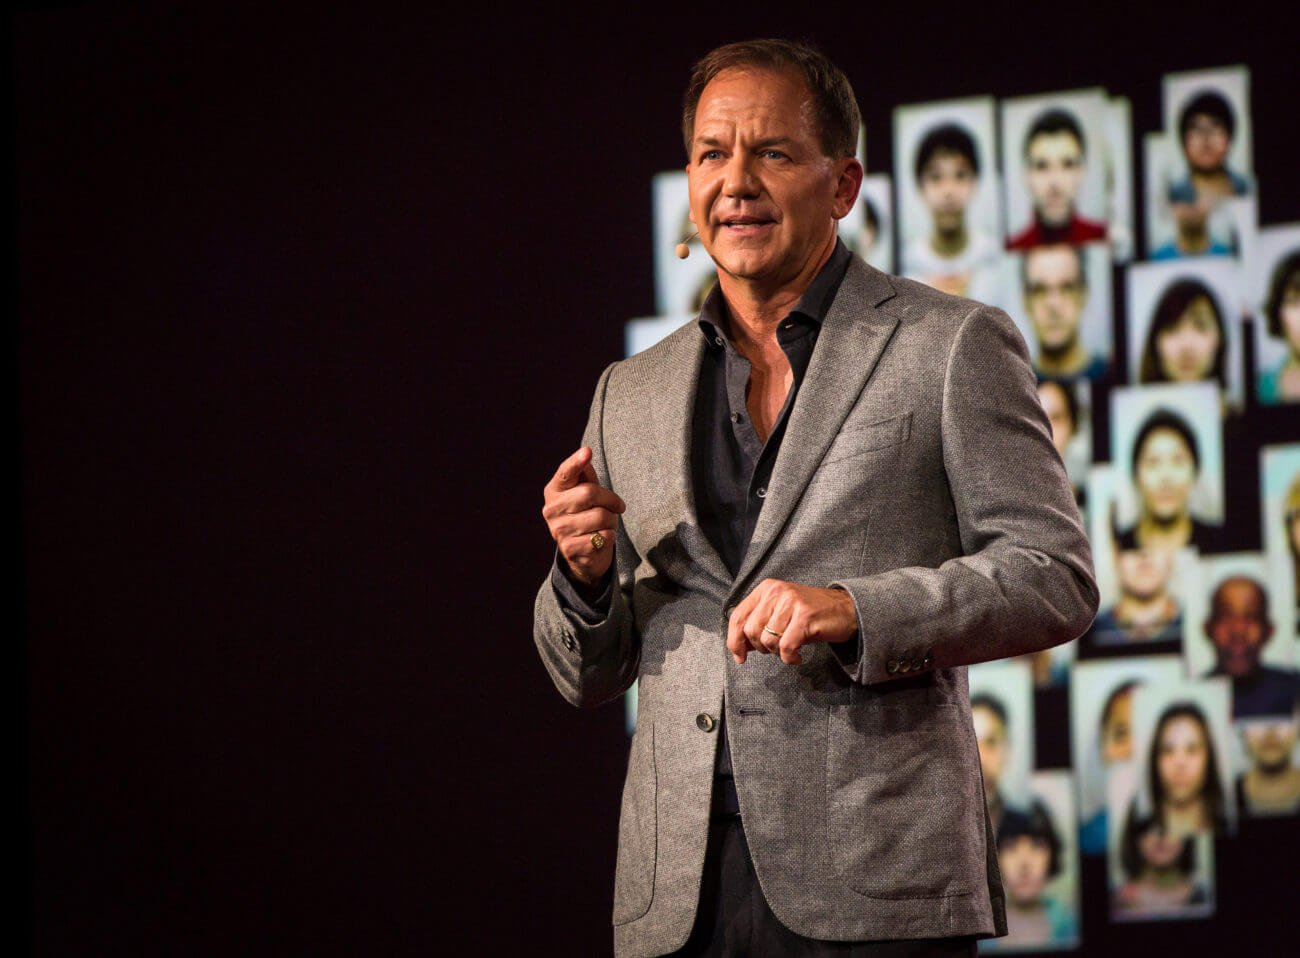 Billionaire Paul Tudor Jones Wants To Get His Chronicle Straight On Bitcoin